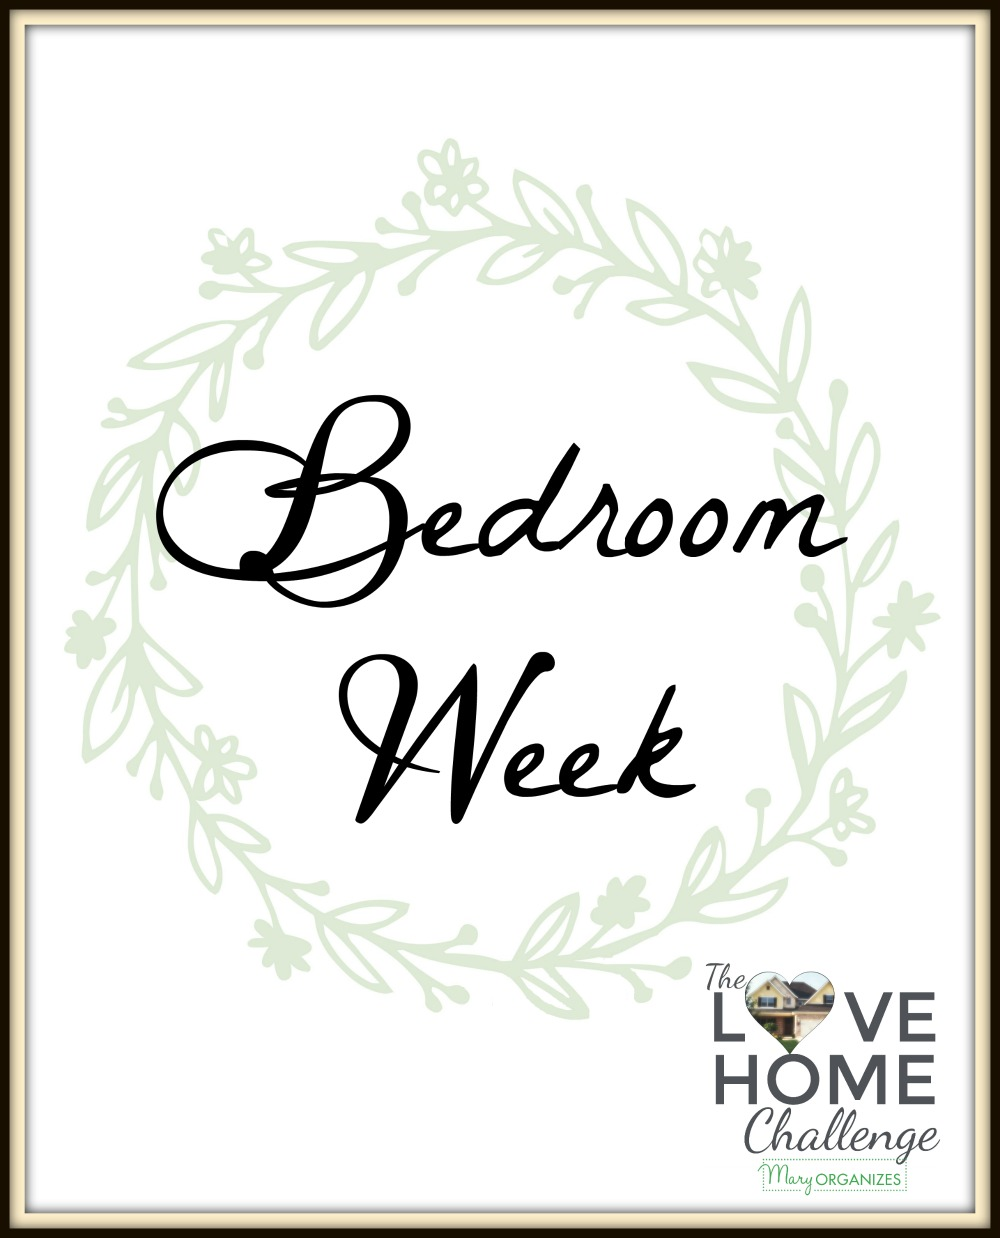 love-home-challenge-bedroom-week-v